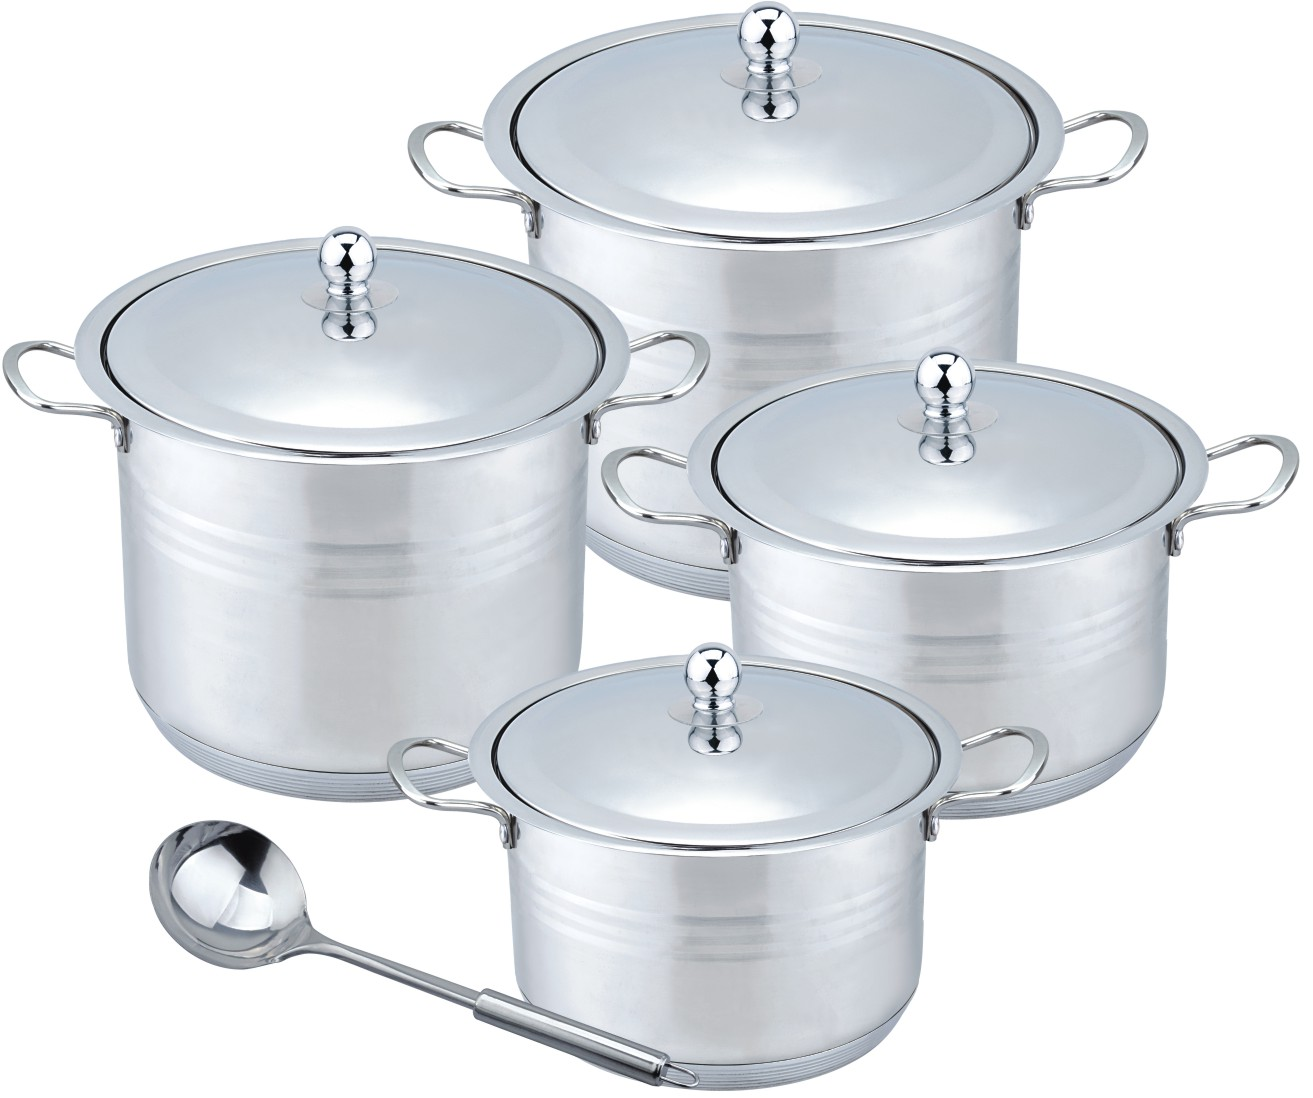 Hot sale 9pcs metal stock pot